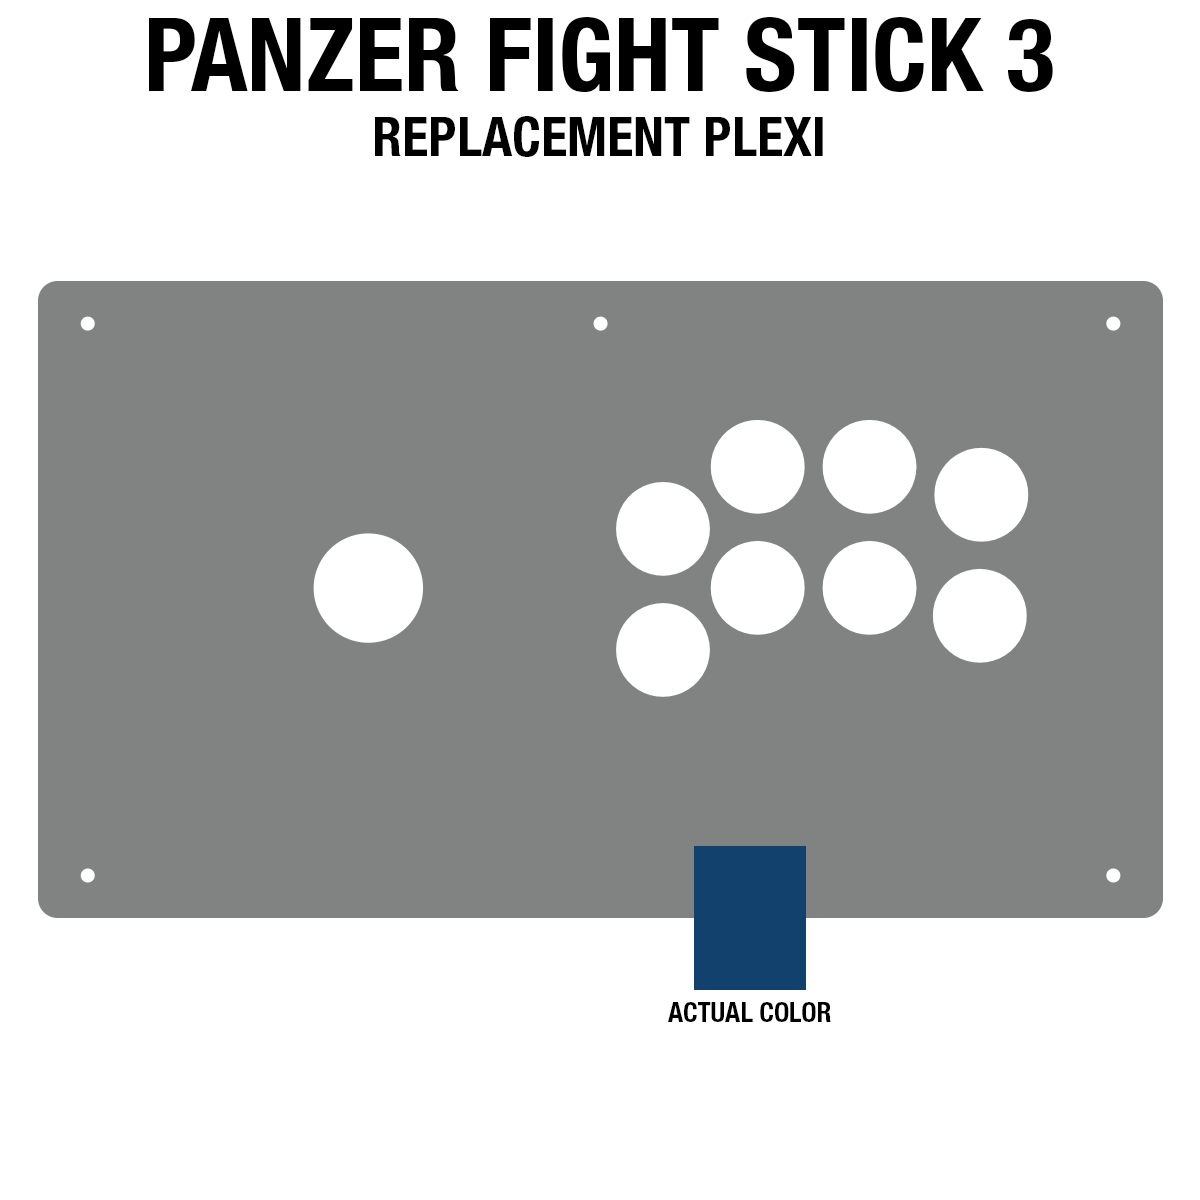 Panzer Fight Stick 3 [KOREAN EDITION] Plexi - Blue Frosted (8 Buttons)